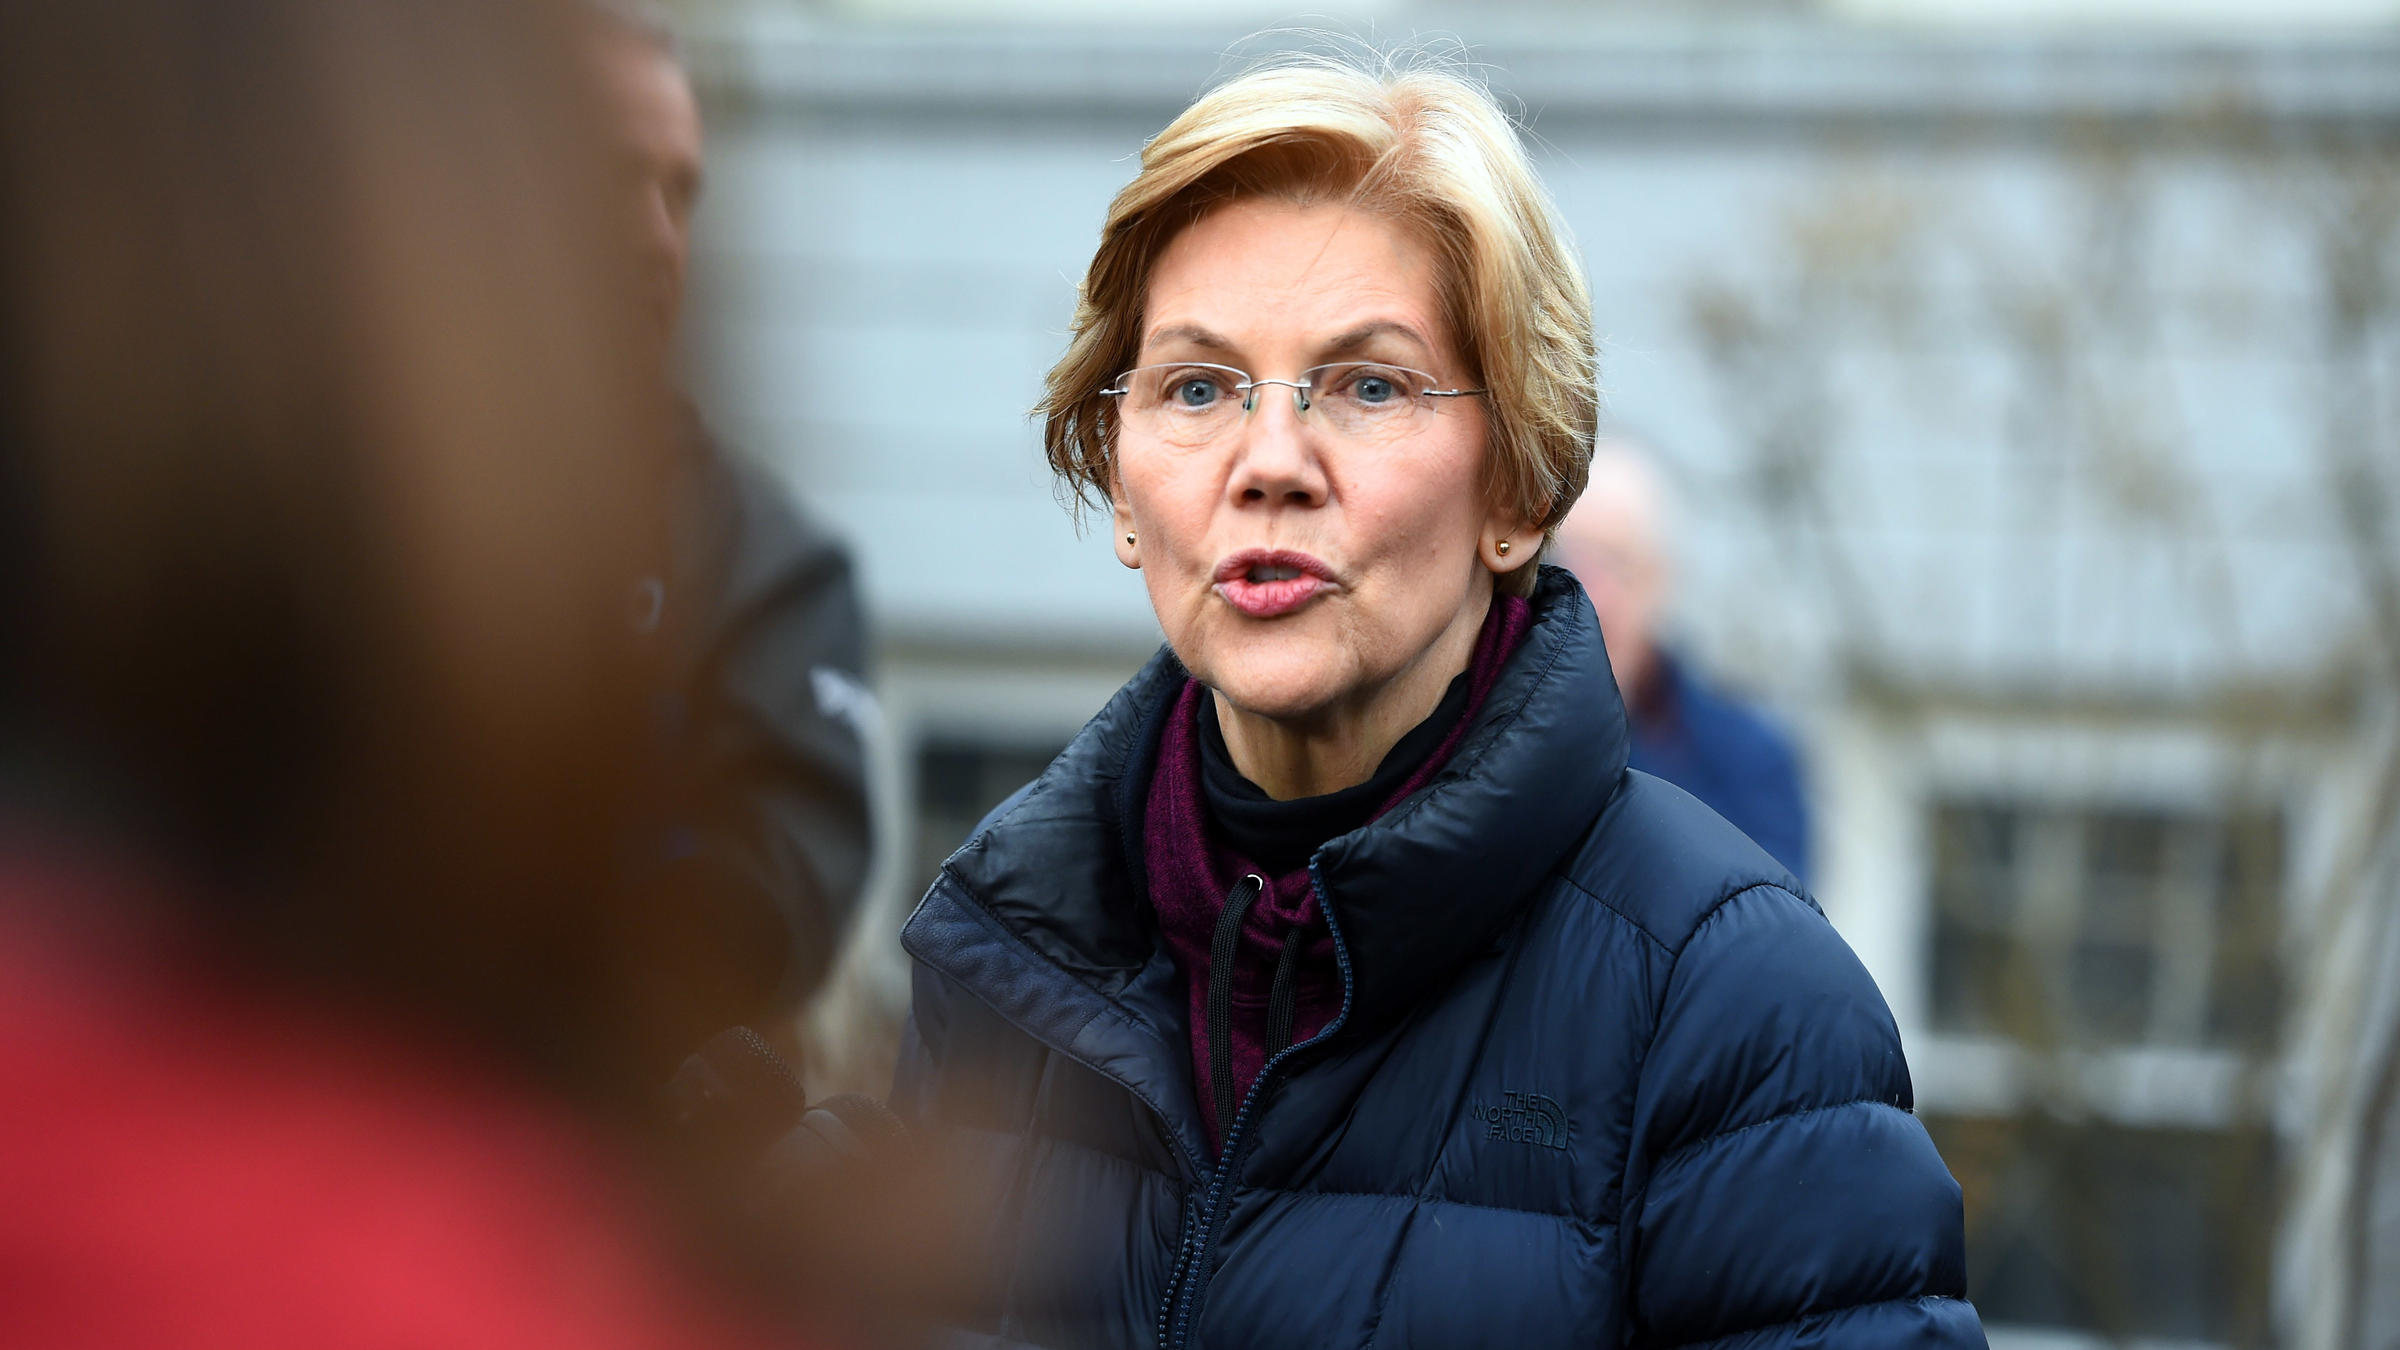 Hollywood Celebs Throw Support Behind Elizabeth Warren Presidential Run